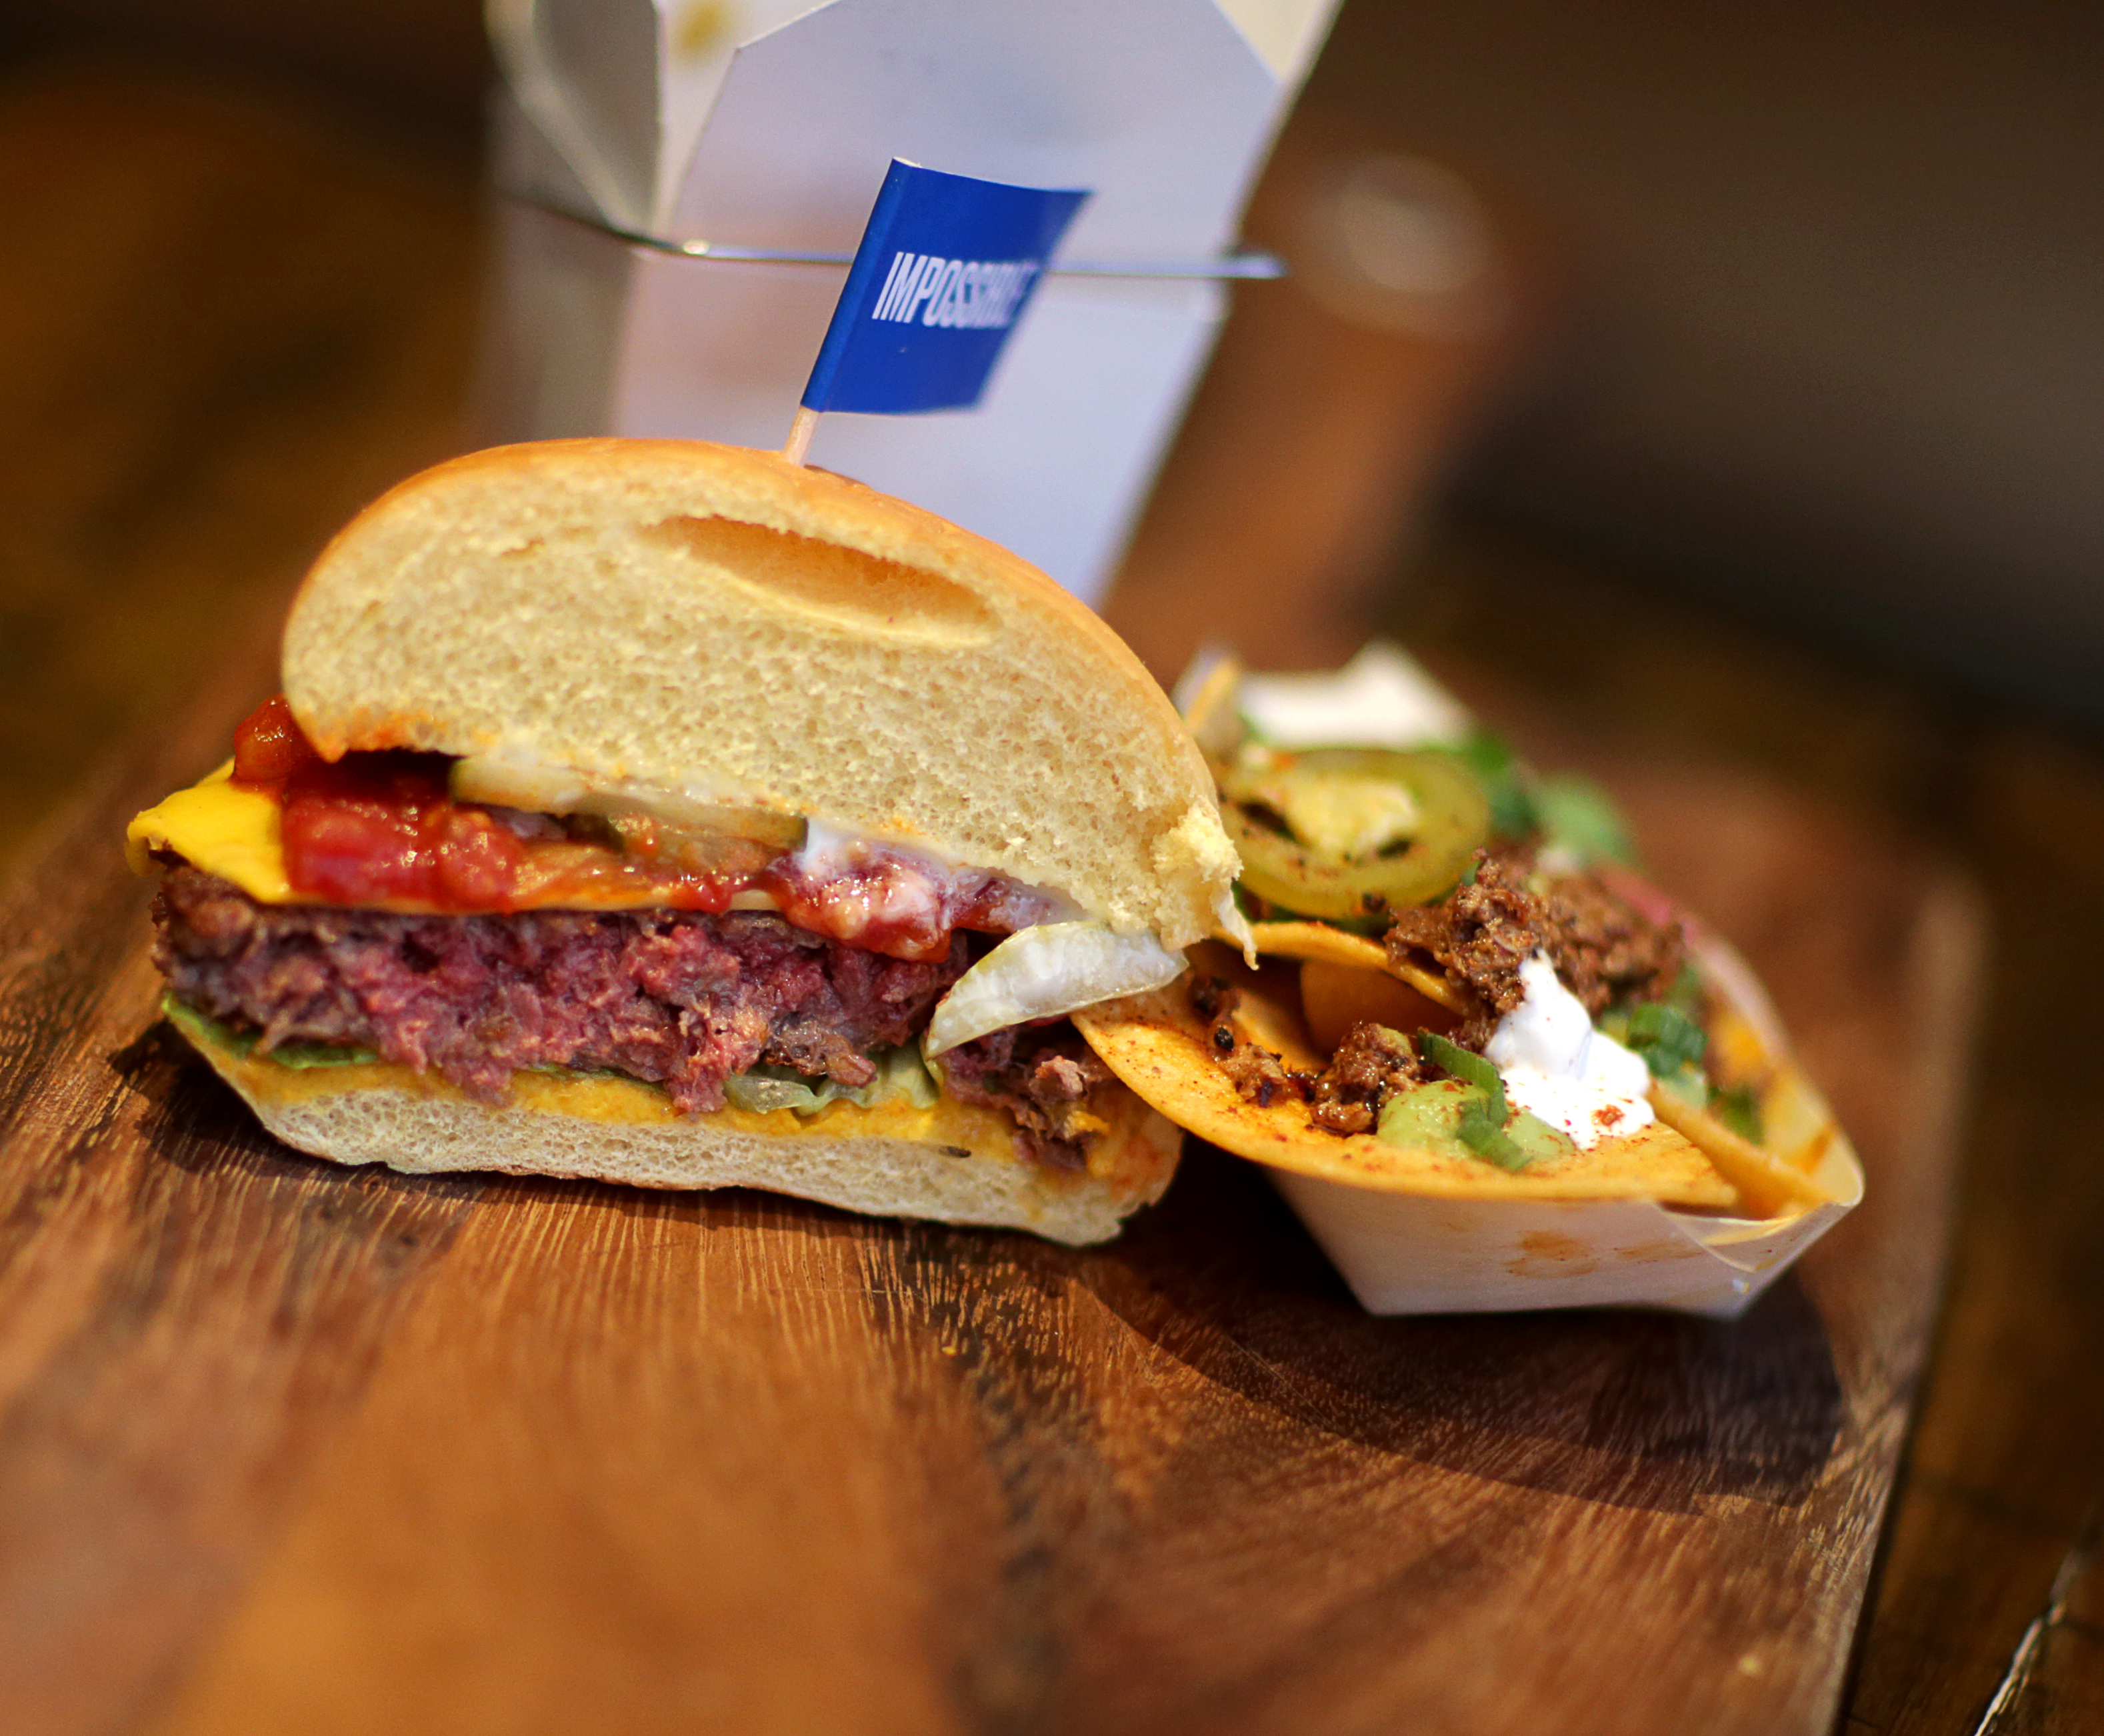 The meatless Impossible Burger at Little Donkey in Cambridge, MA on Oct. 19, 2017.